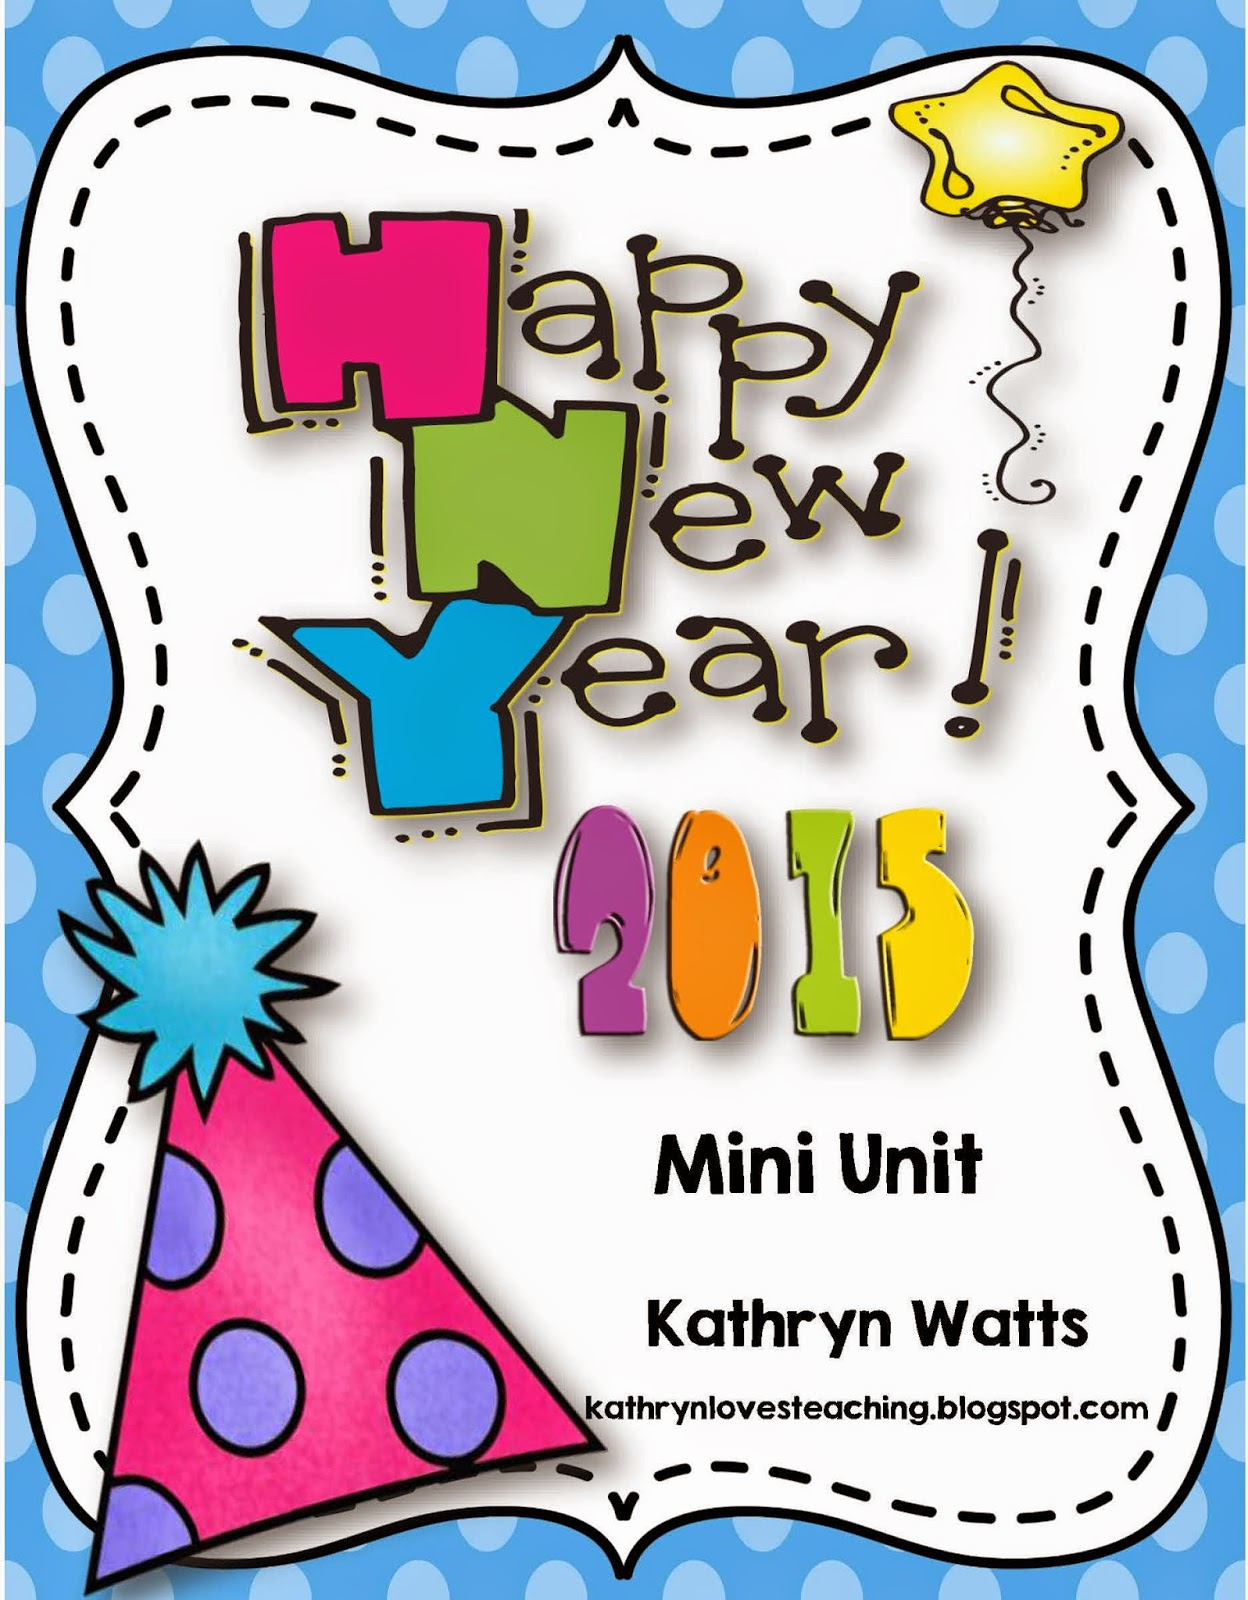 http://www.teacherspayteachers.com/Product/New-Year-2015-Mini-Unit-469493